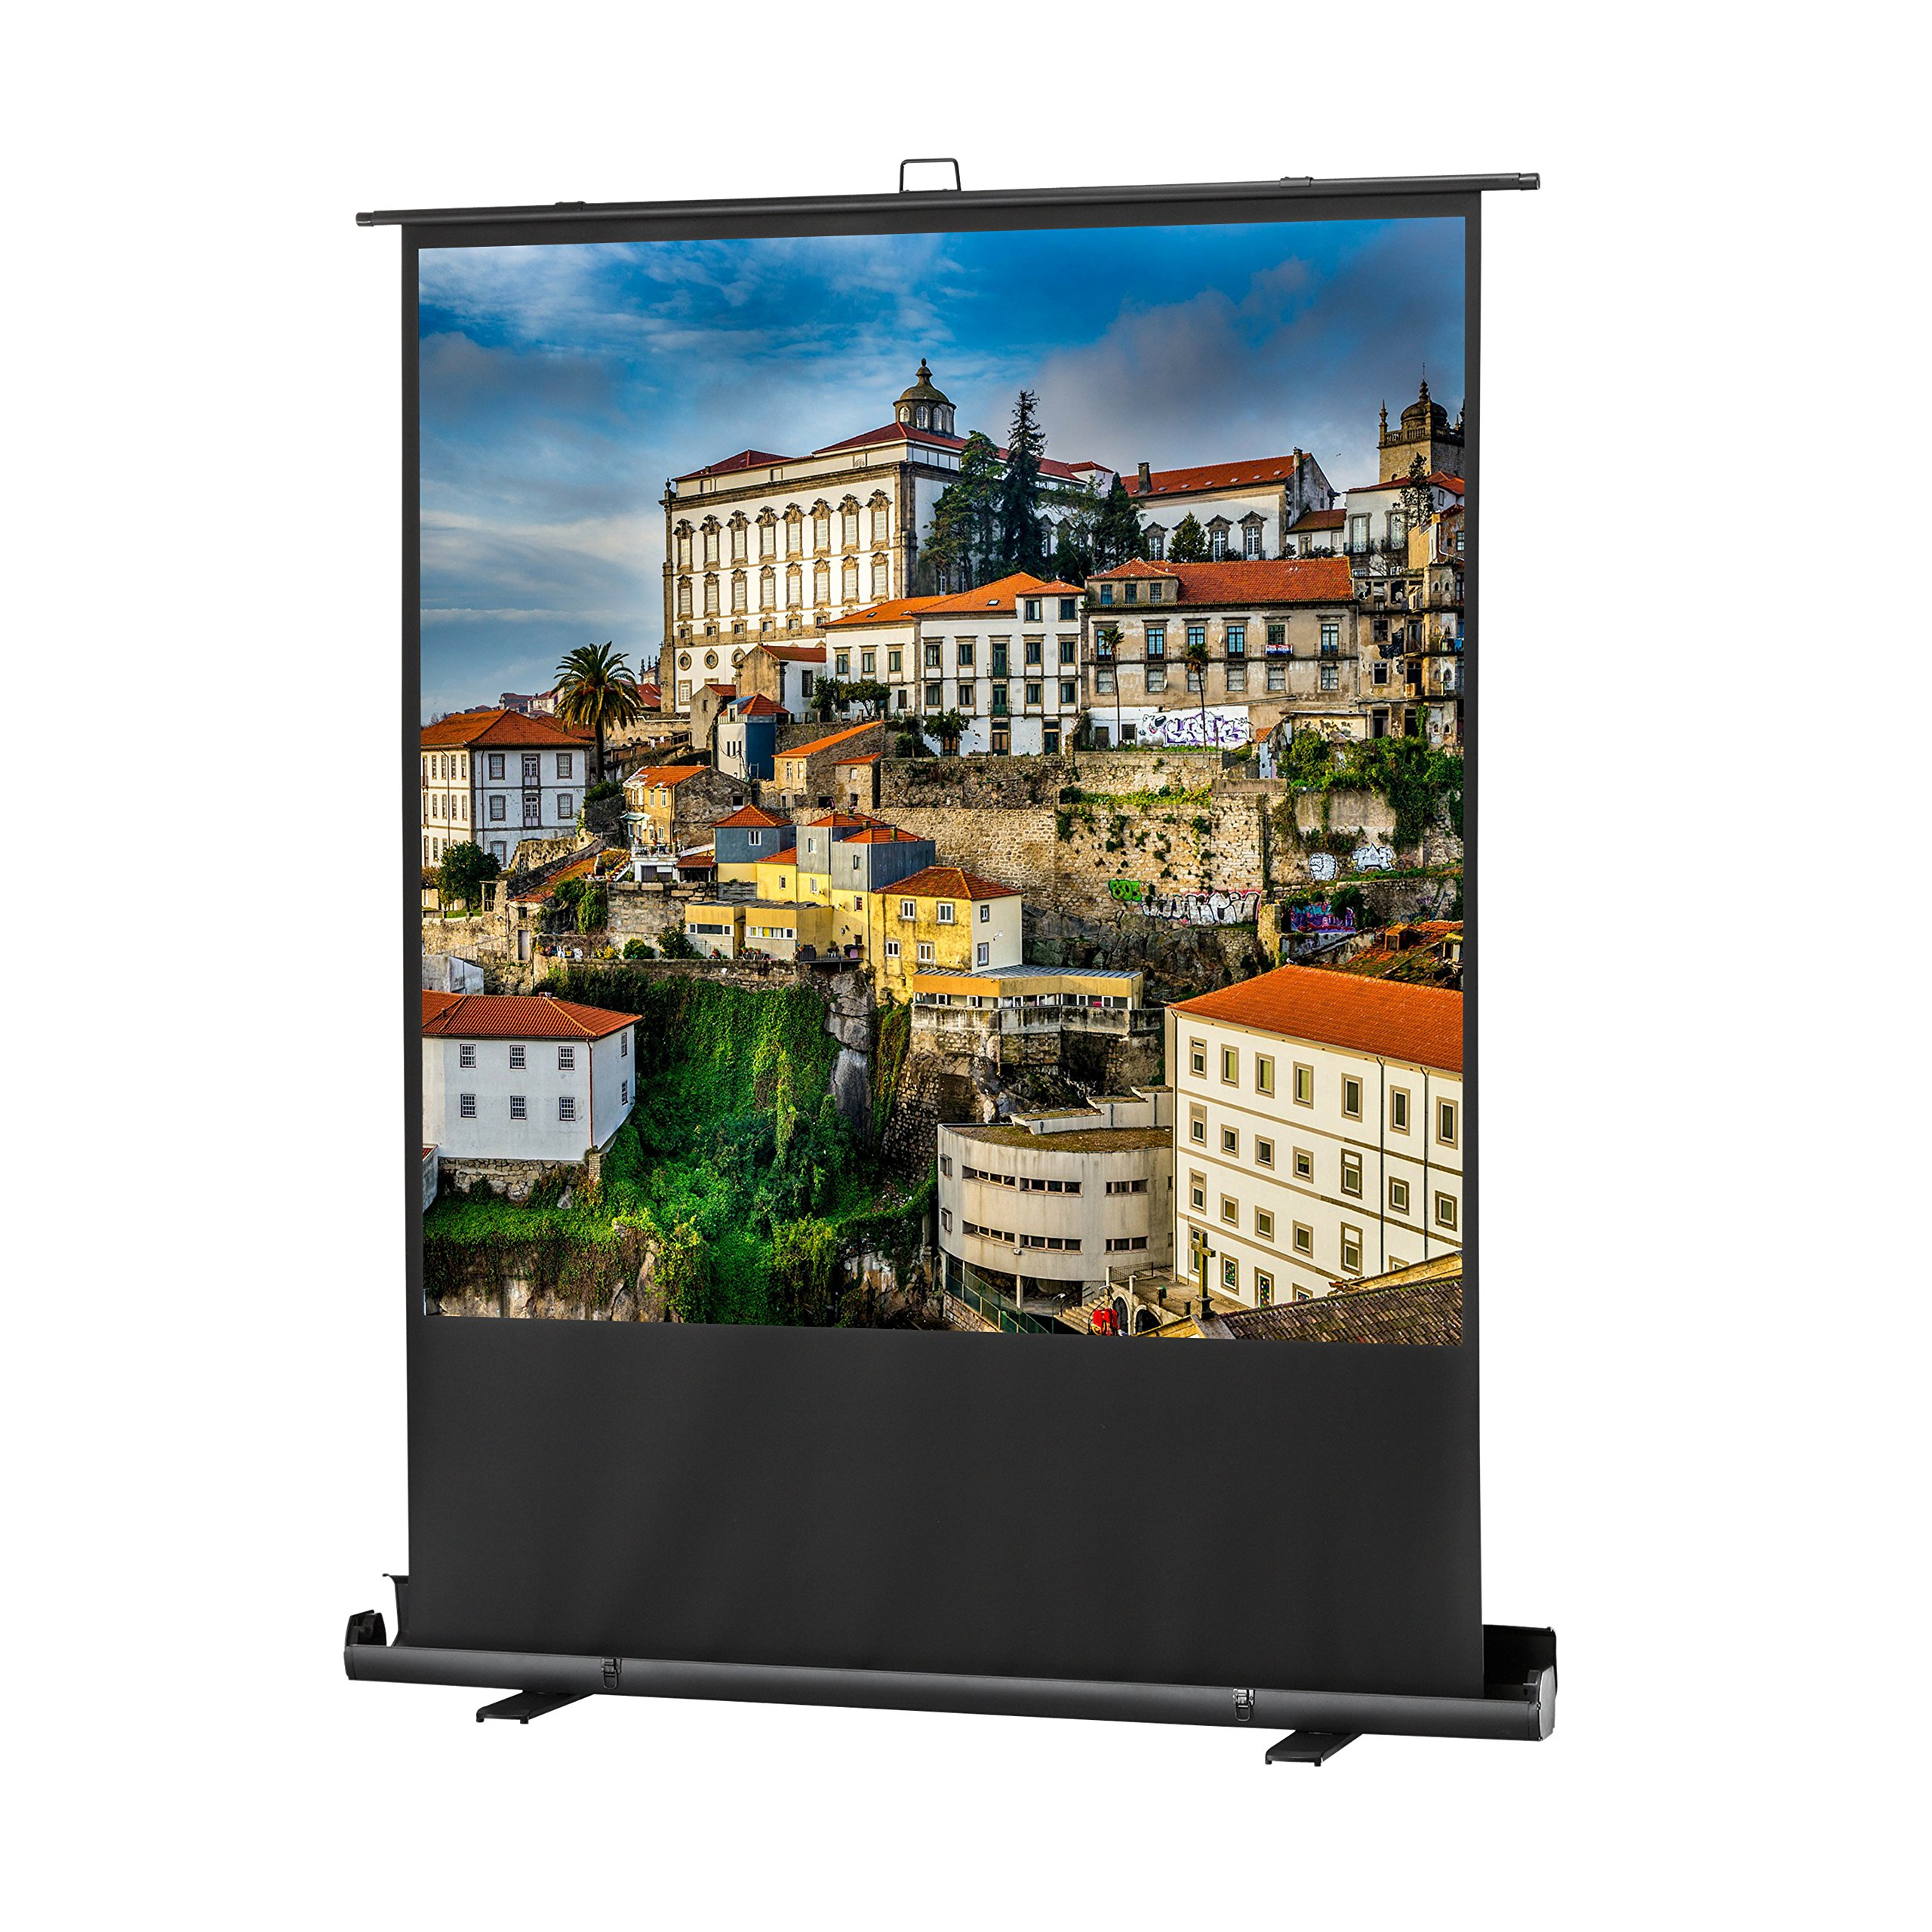 celexon 100'' Pull Up Projector Screen Mobile Professional Plus| 69'' x 69'' Viewing Area | 1:1 format | Portable floor pull up projector screen | Pneumatic Lift | Leightweight aluminium case by Celexon